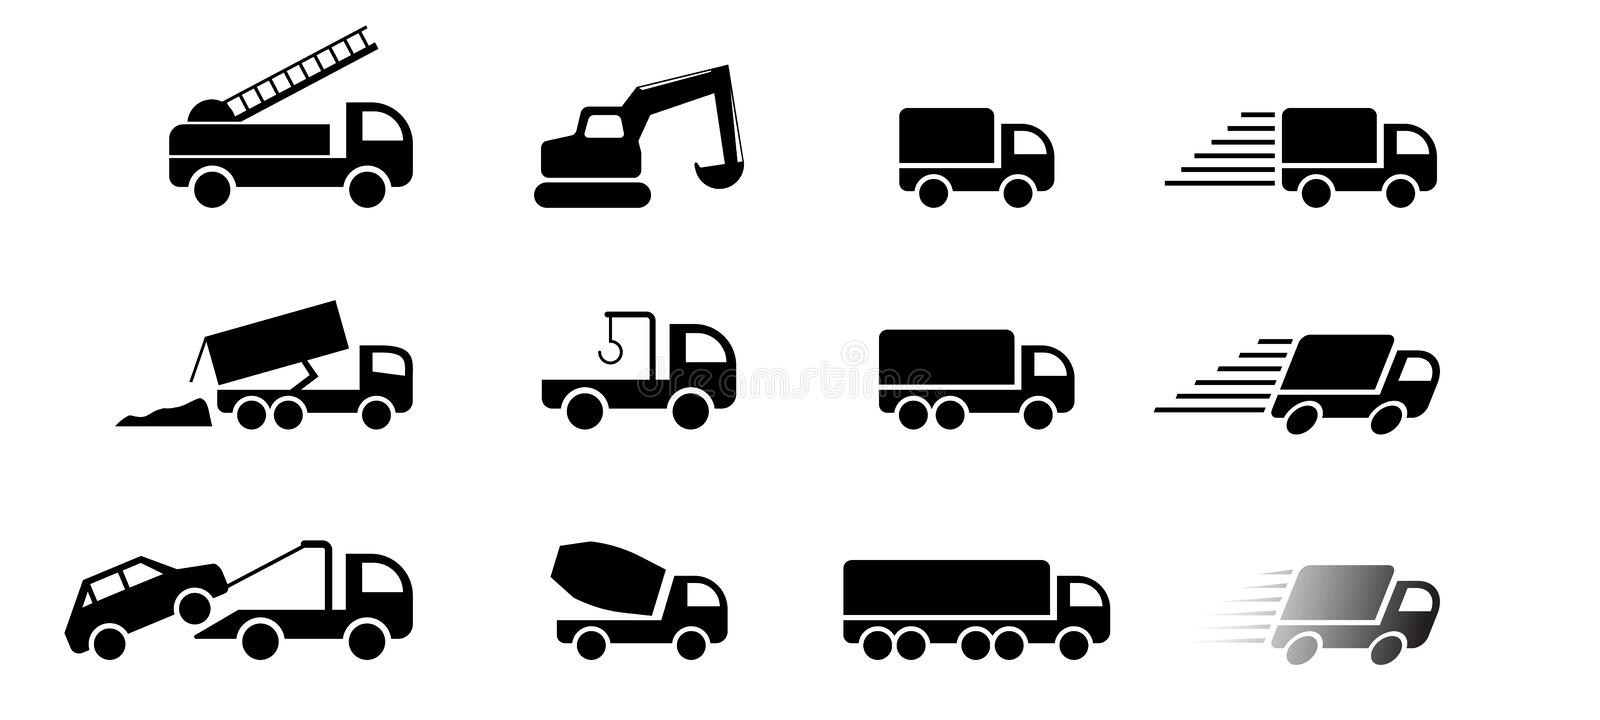 Set of truck service icon and sign, vector art stock illustration